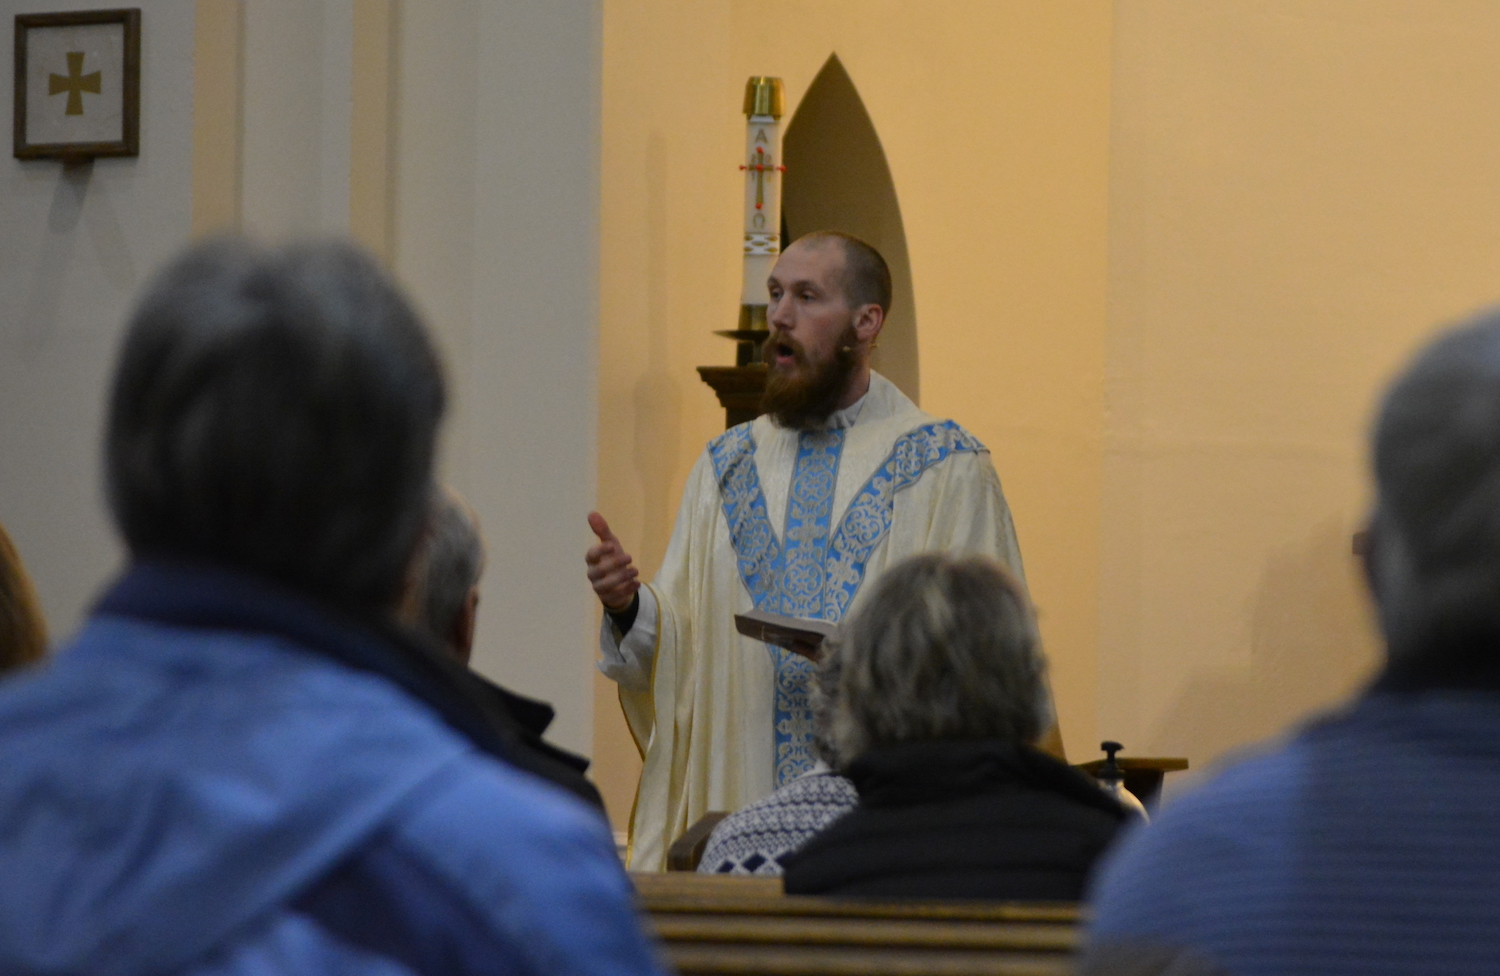 Liturgy of the Word-Teaching Mass